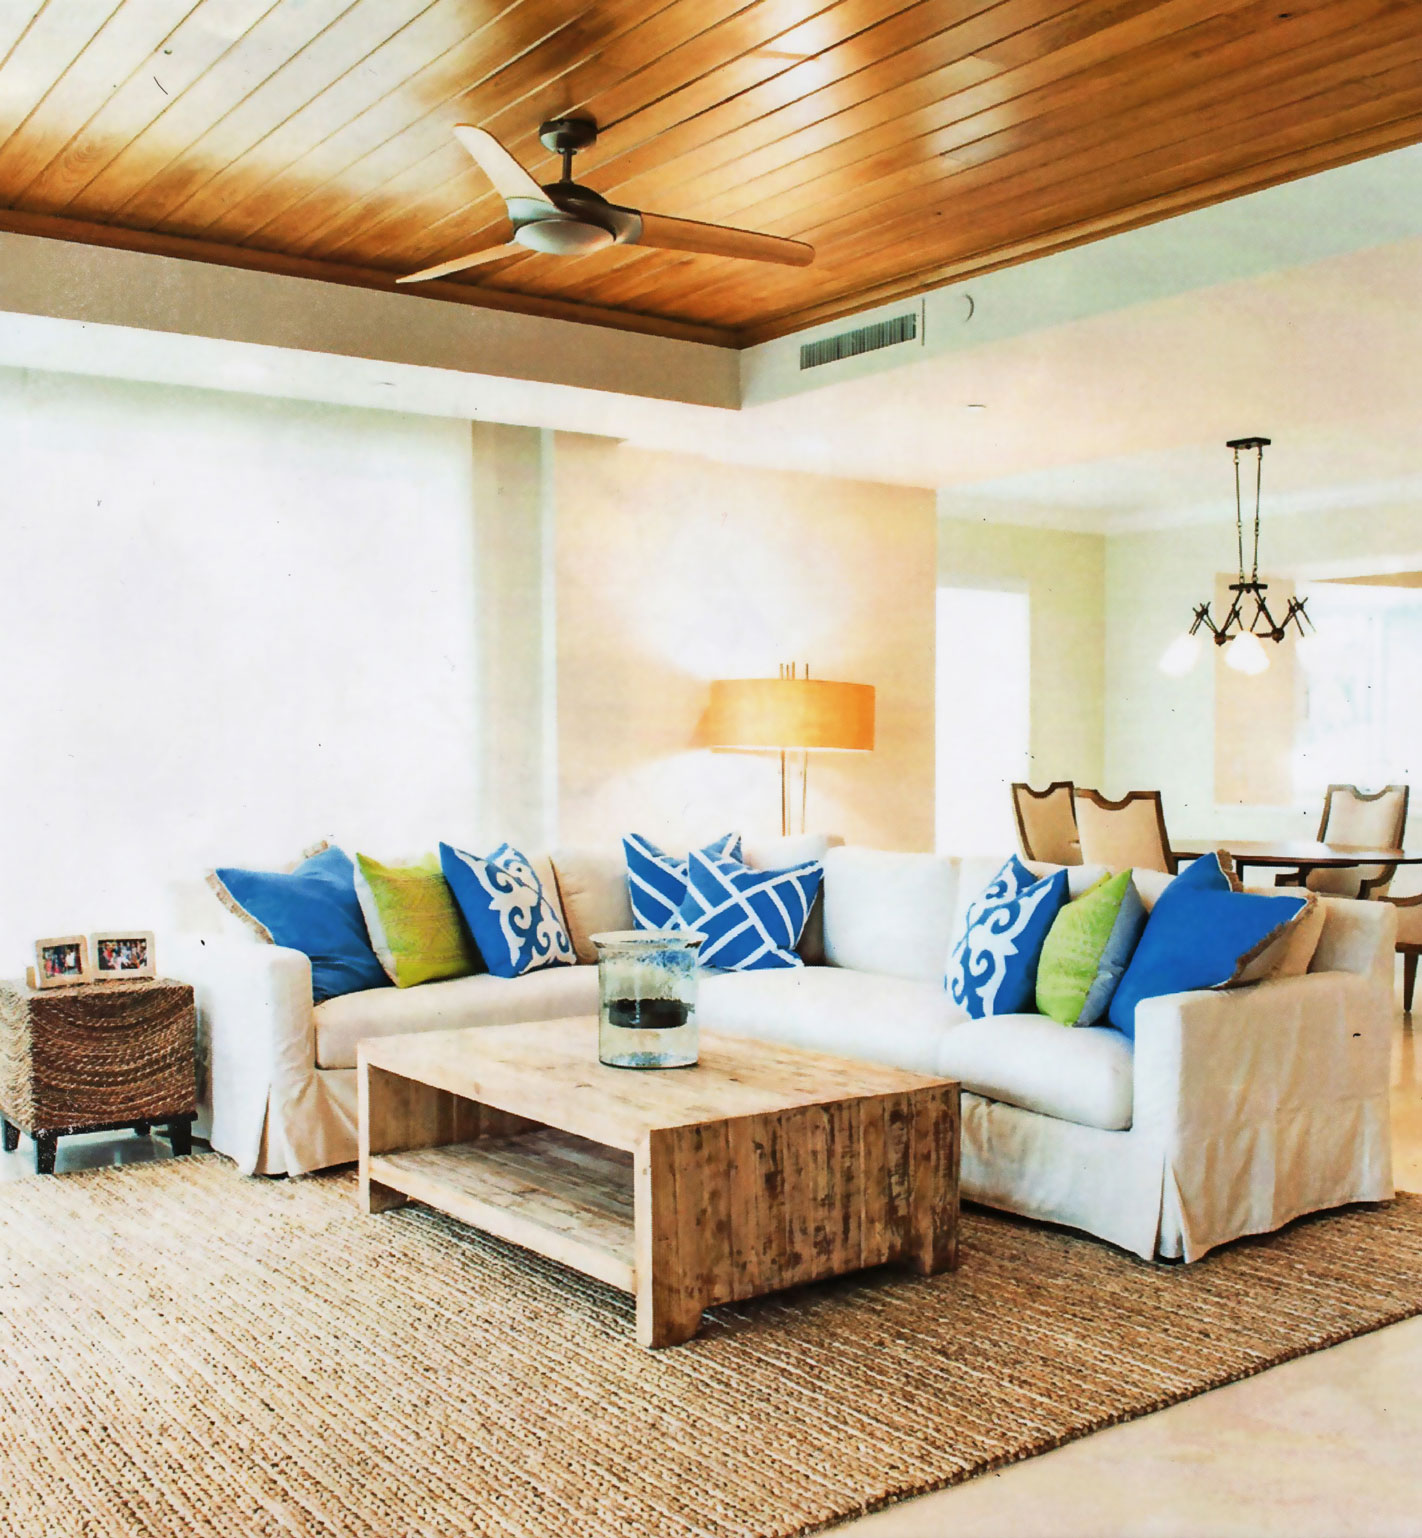 Comfortable coastal inspired living area with custom wood ceiling and urban style furniture.